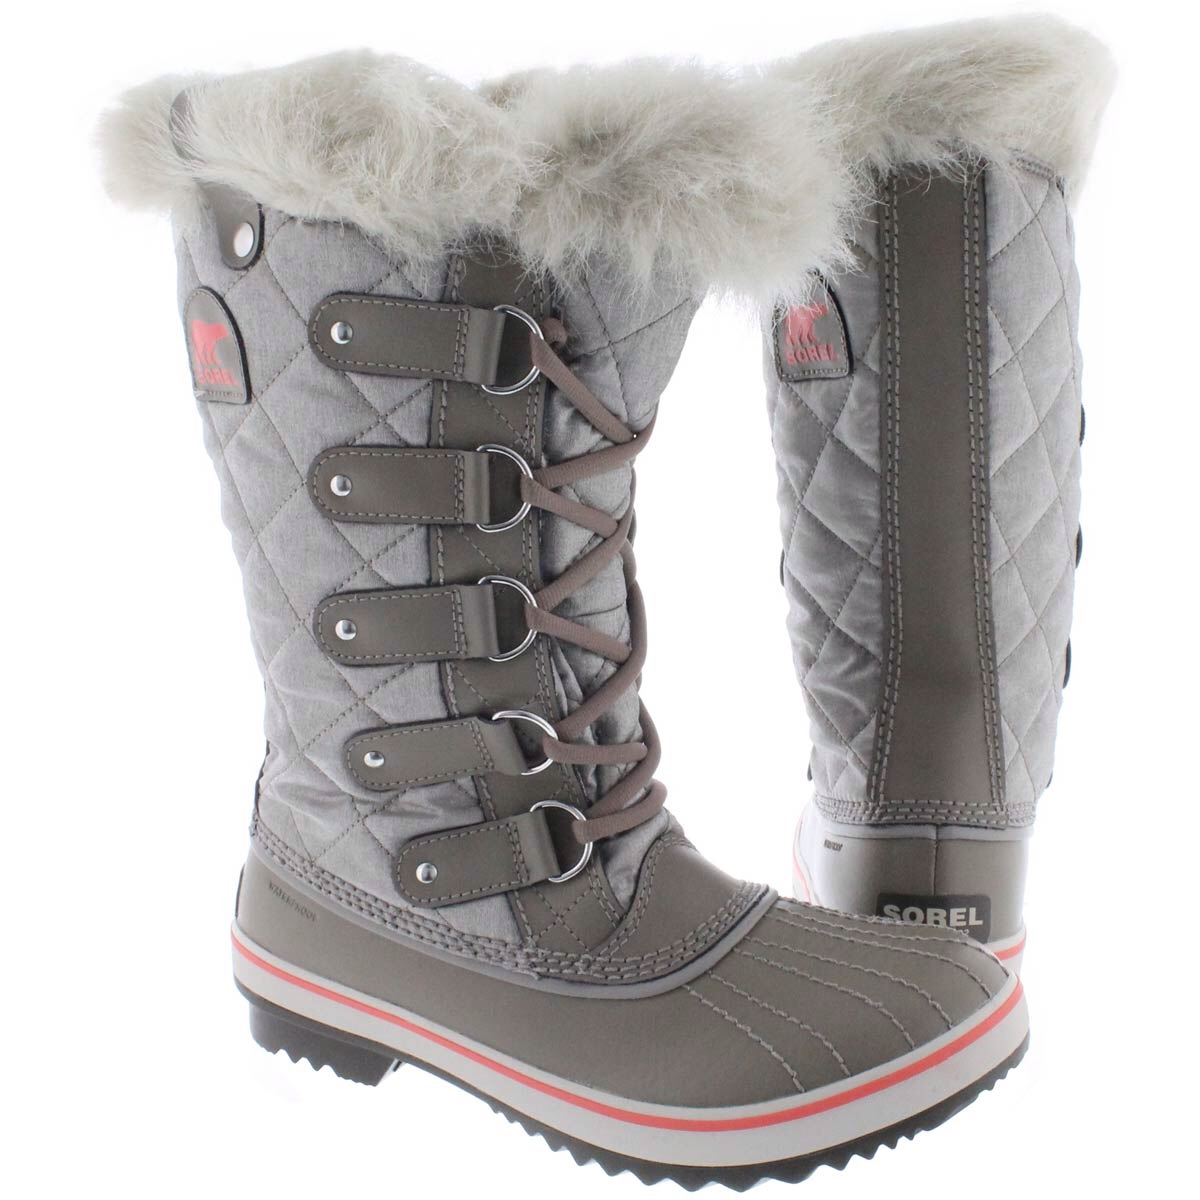 Women's TOFINO kettle-waterproof-winter-boots